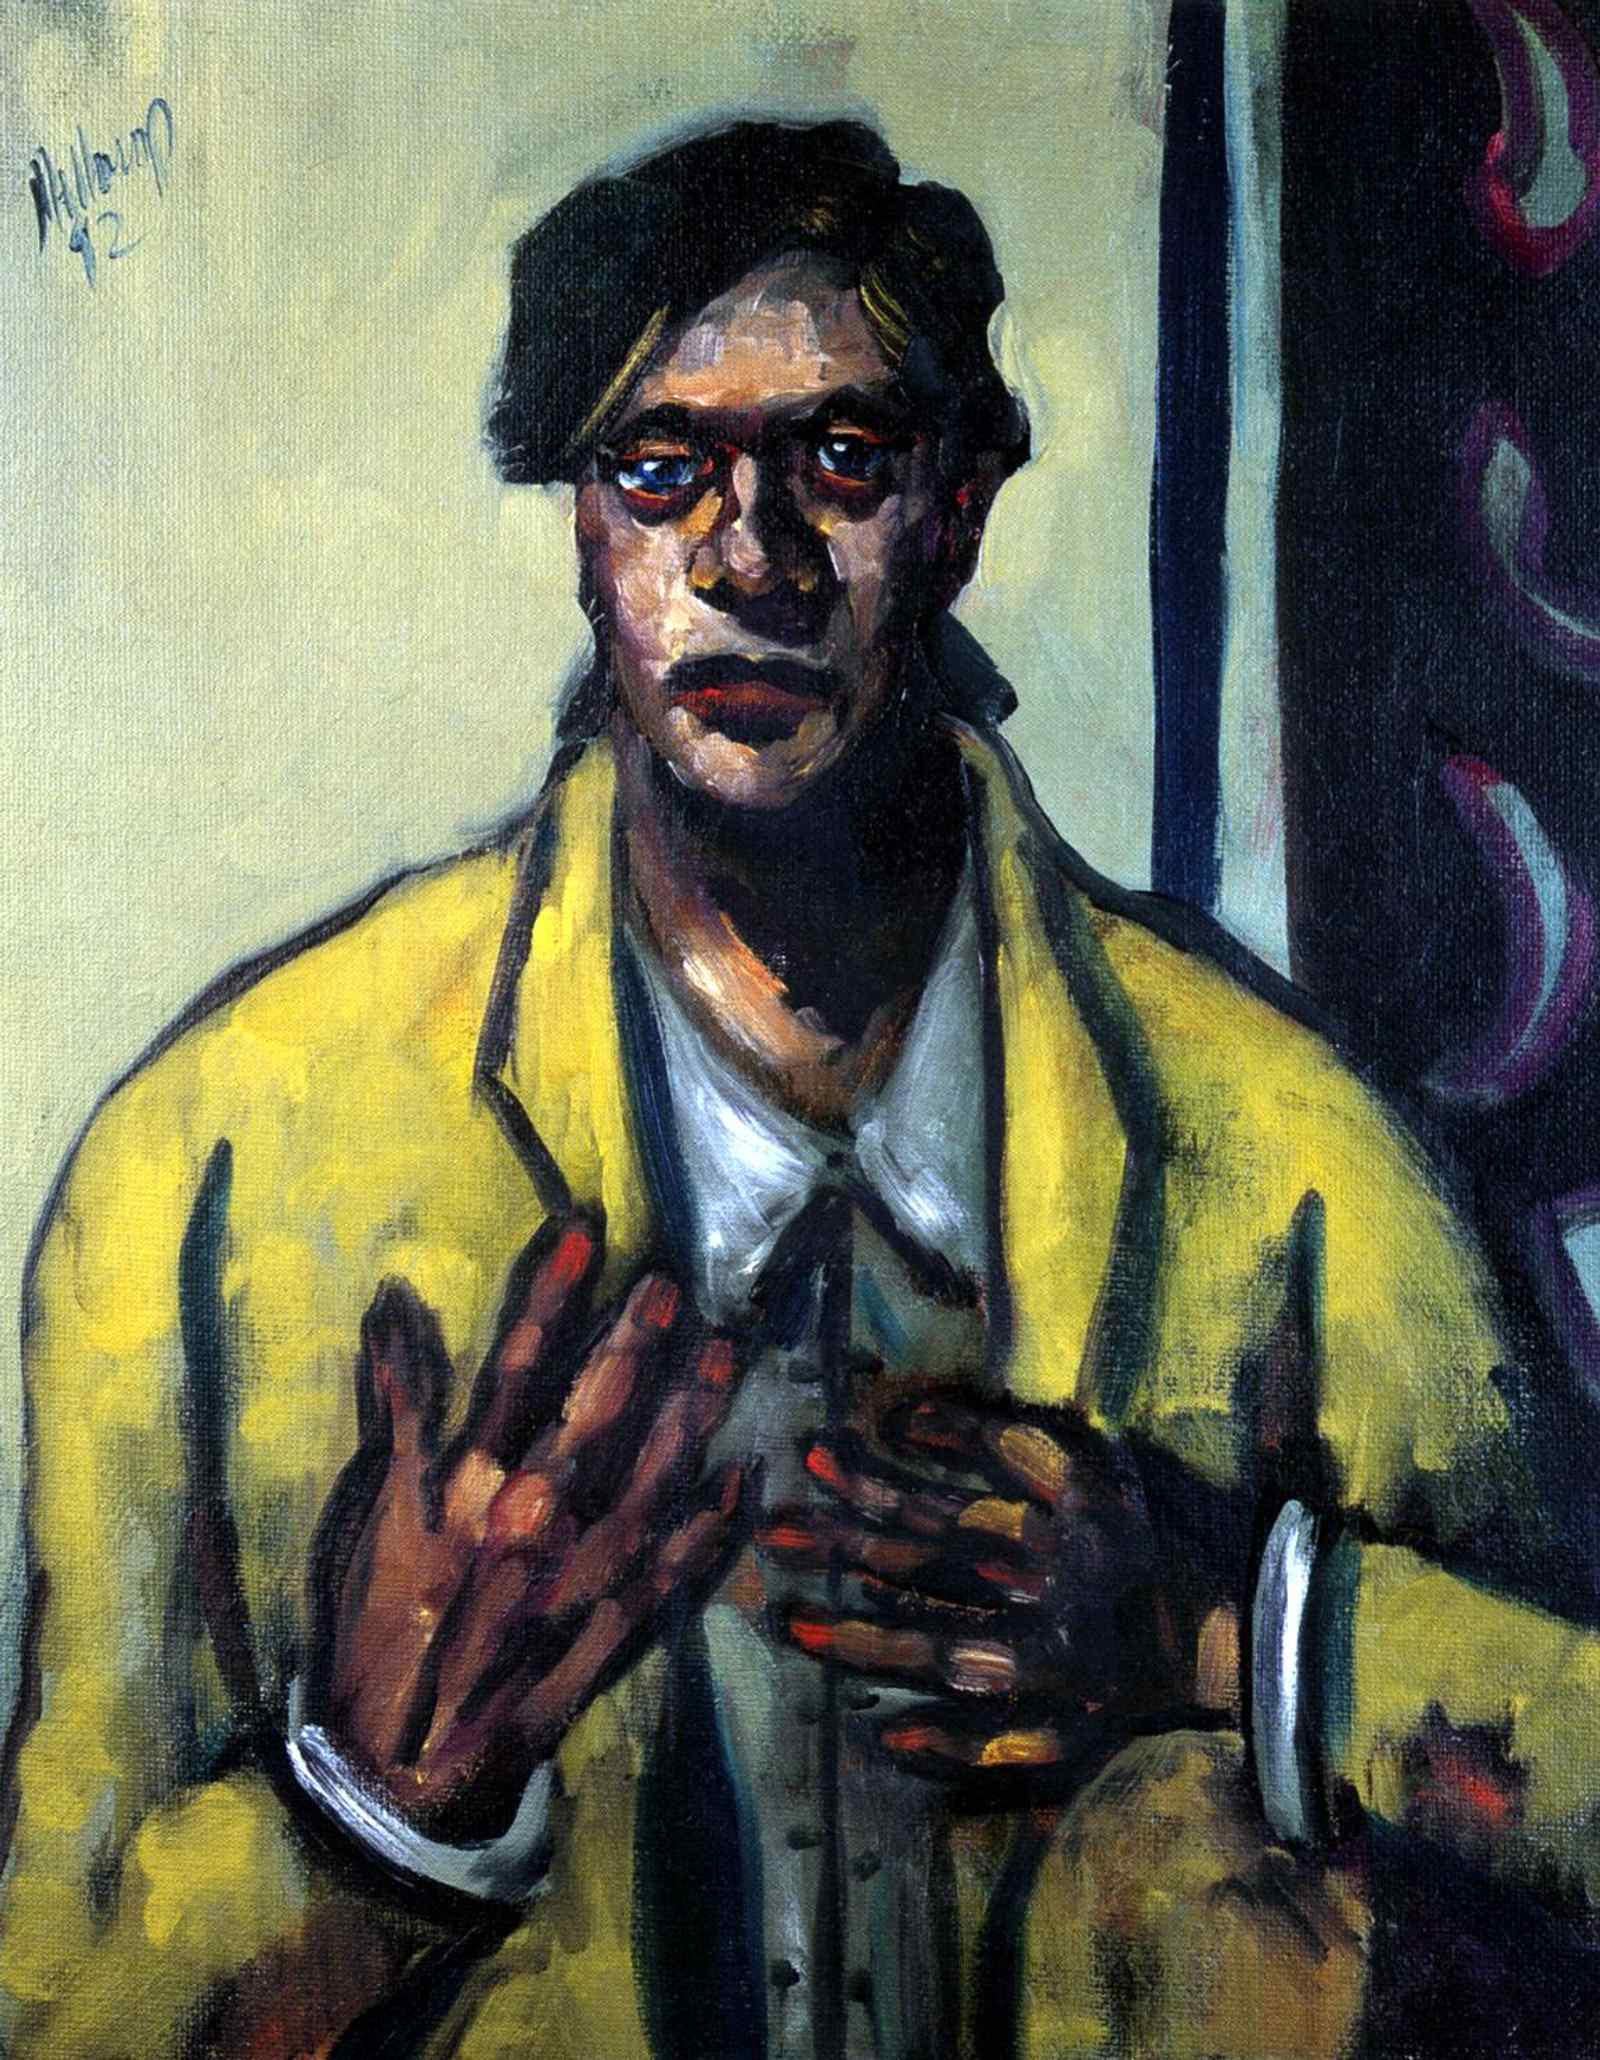 Self Portrait in Yellow Jacket